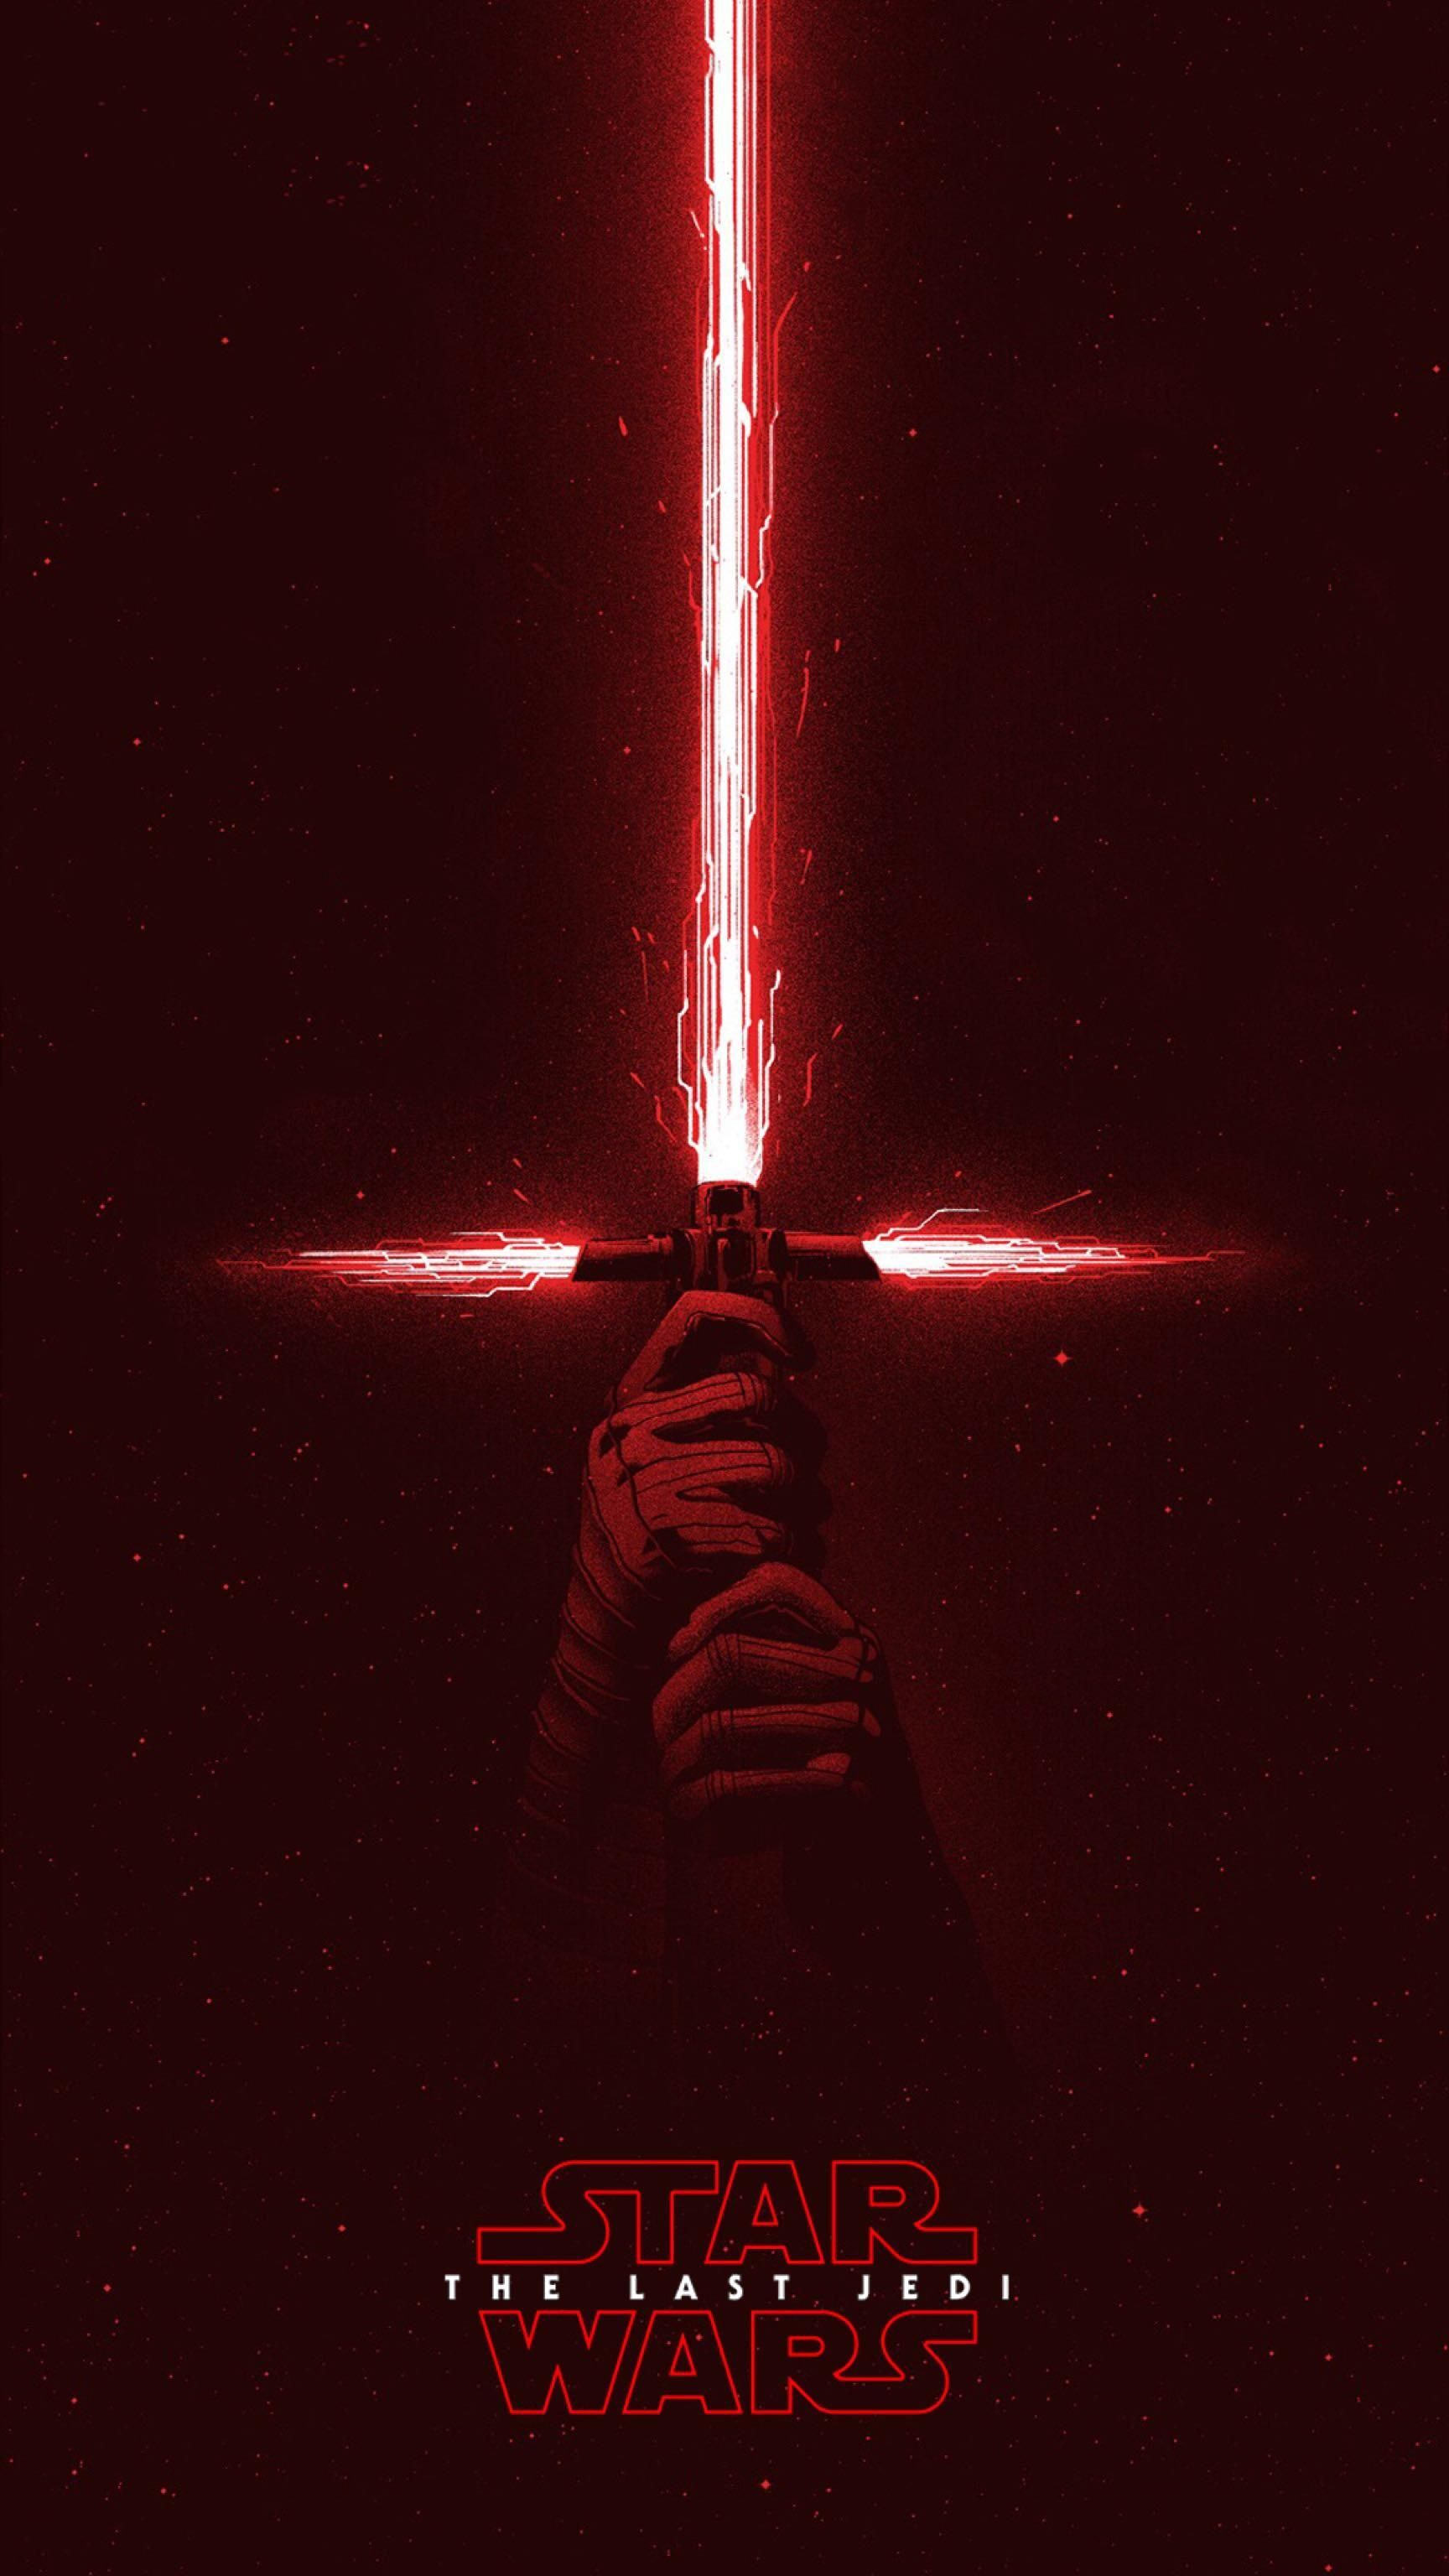 Does Anyone Have A Gif Live Wallpaper Version Of This Https Ift Tt 2hsnq66 Star Wars Wallpaper Star Wars Wallpaper Iphone Star Wars Poster